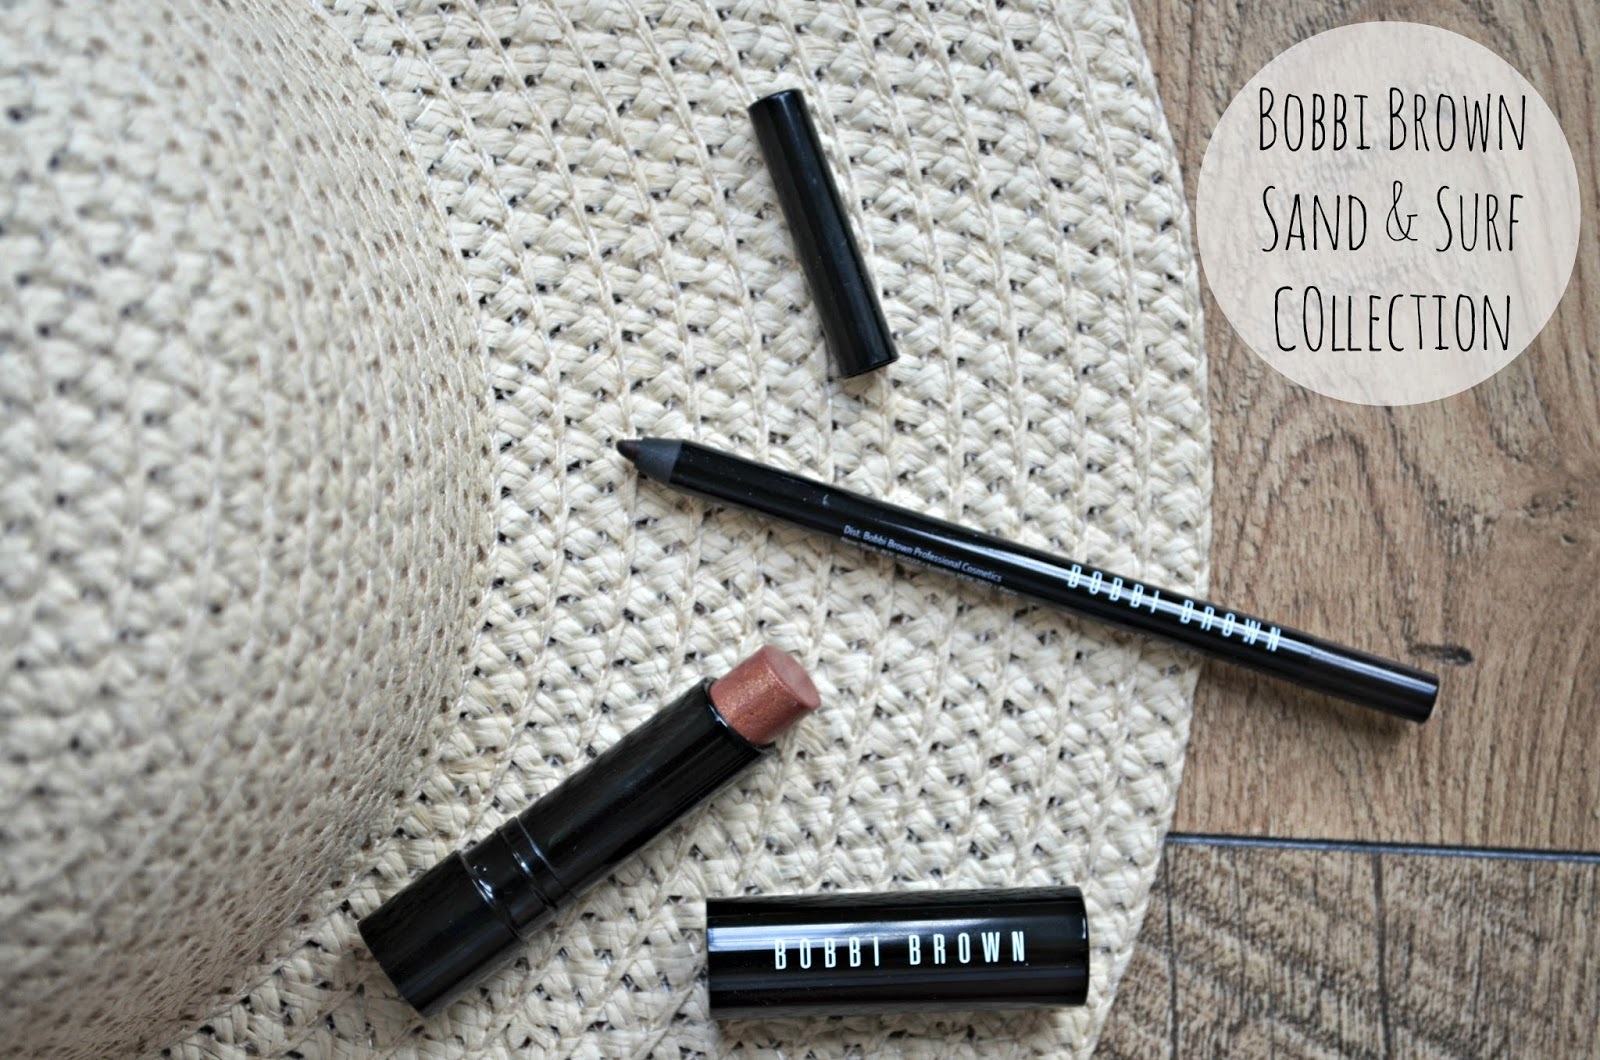 Bobbi Brown Sand & Surf Collection